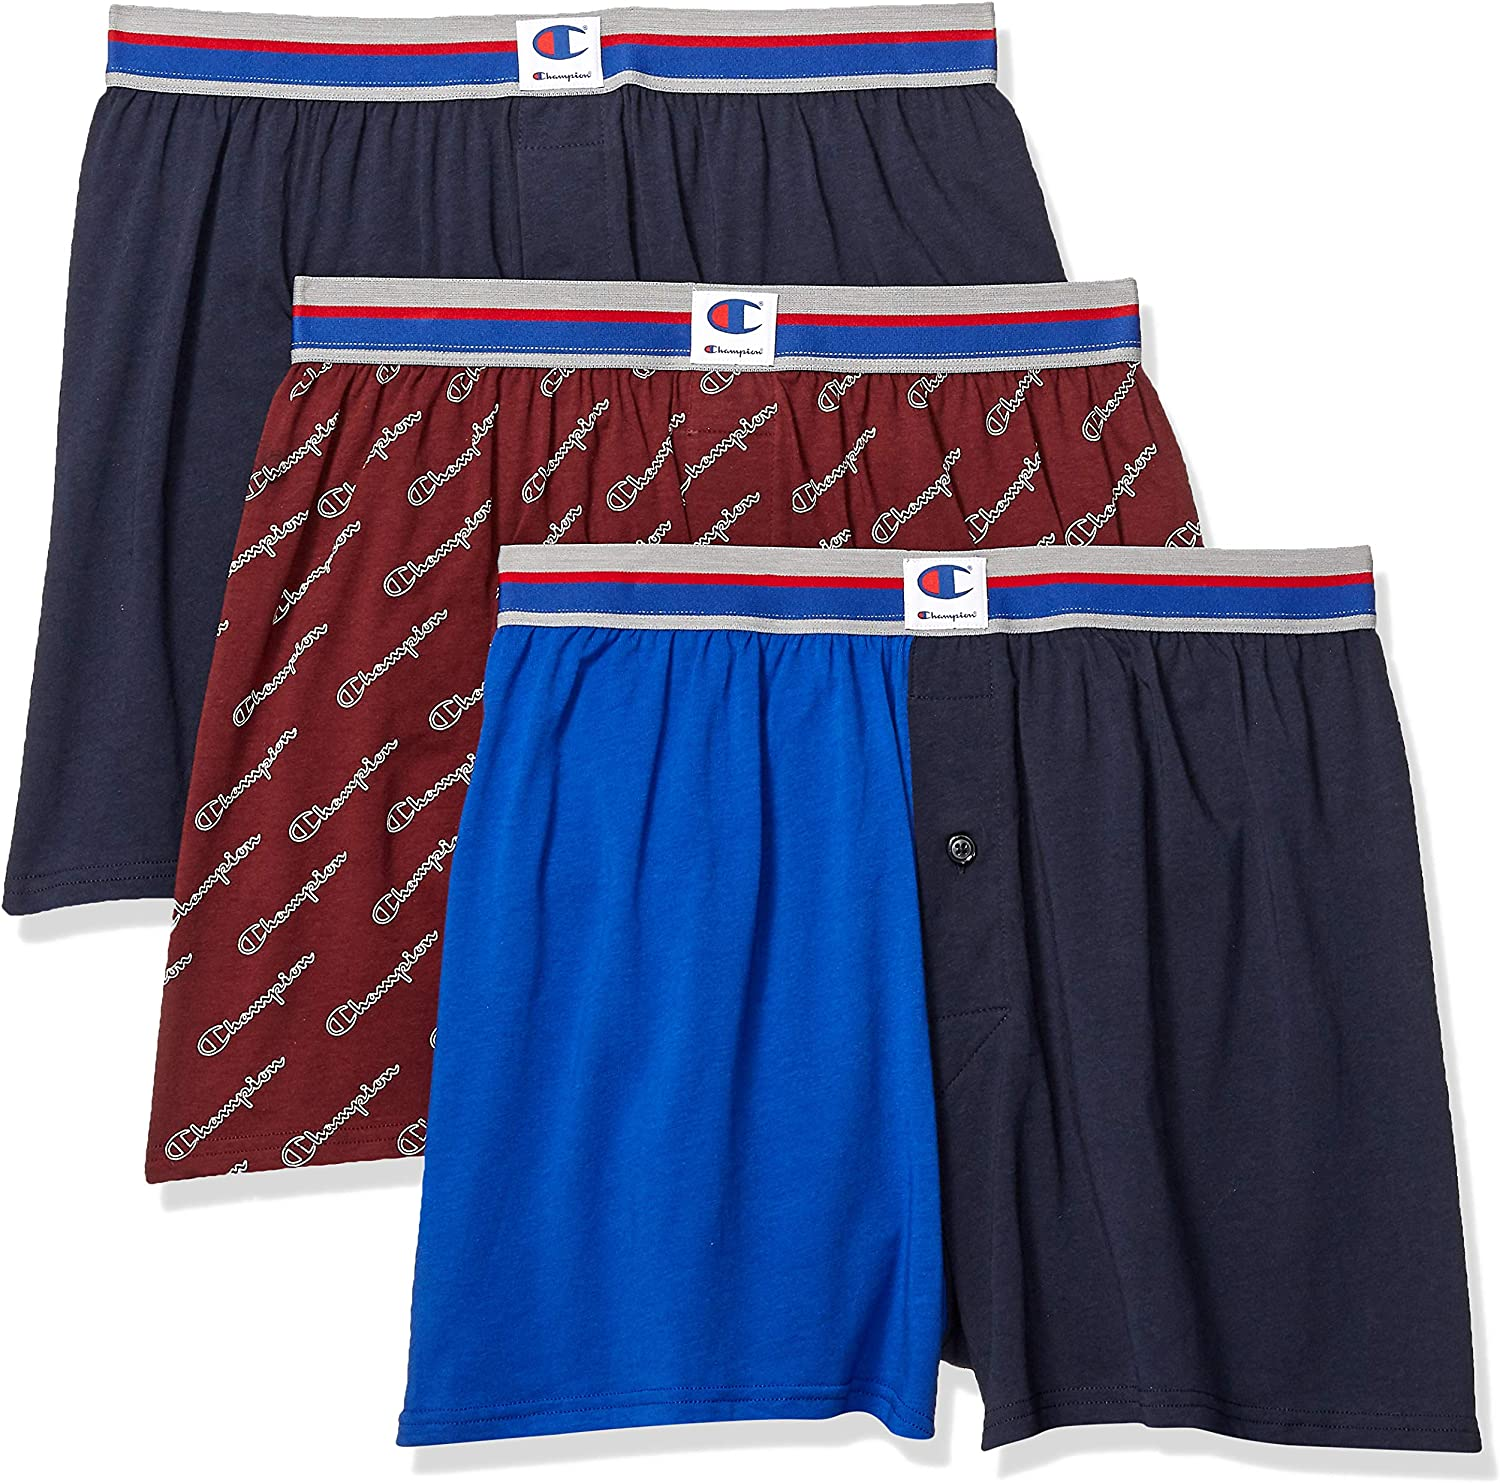 Champion Men's Everyday Comfort Cotton Stretch Knit Boxers 3-Pack